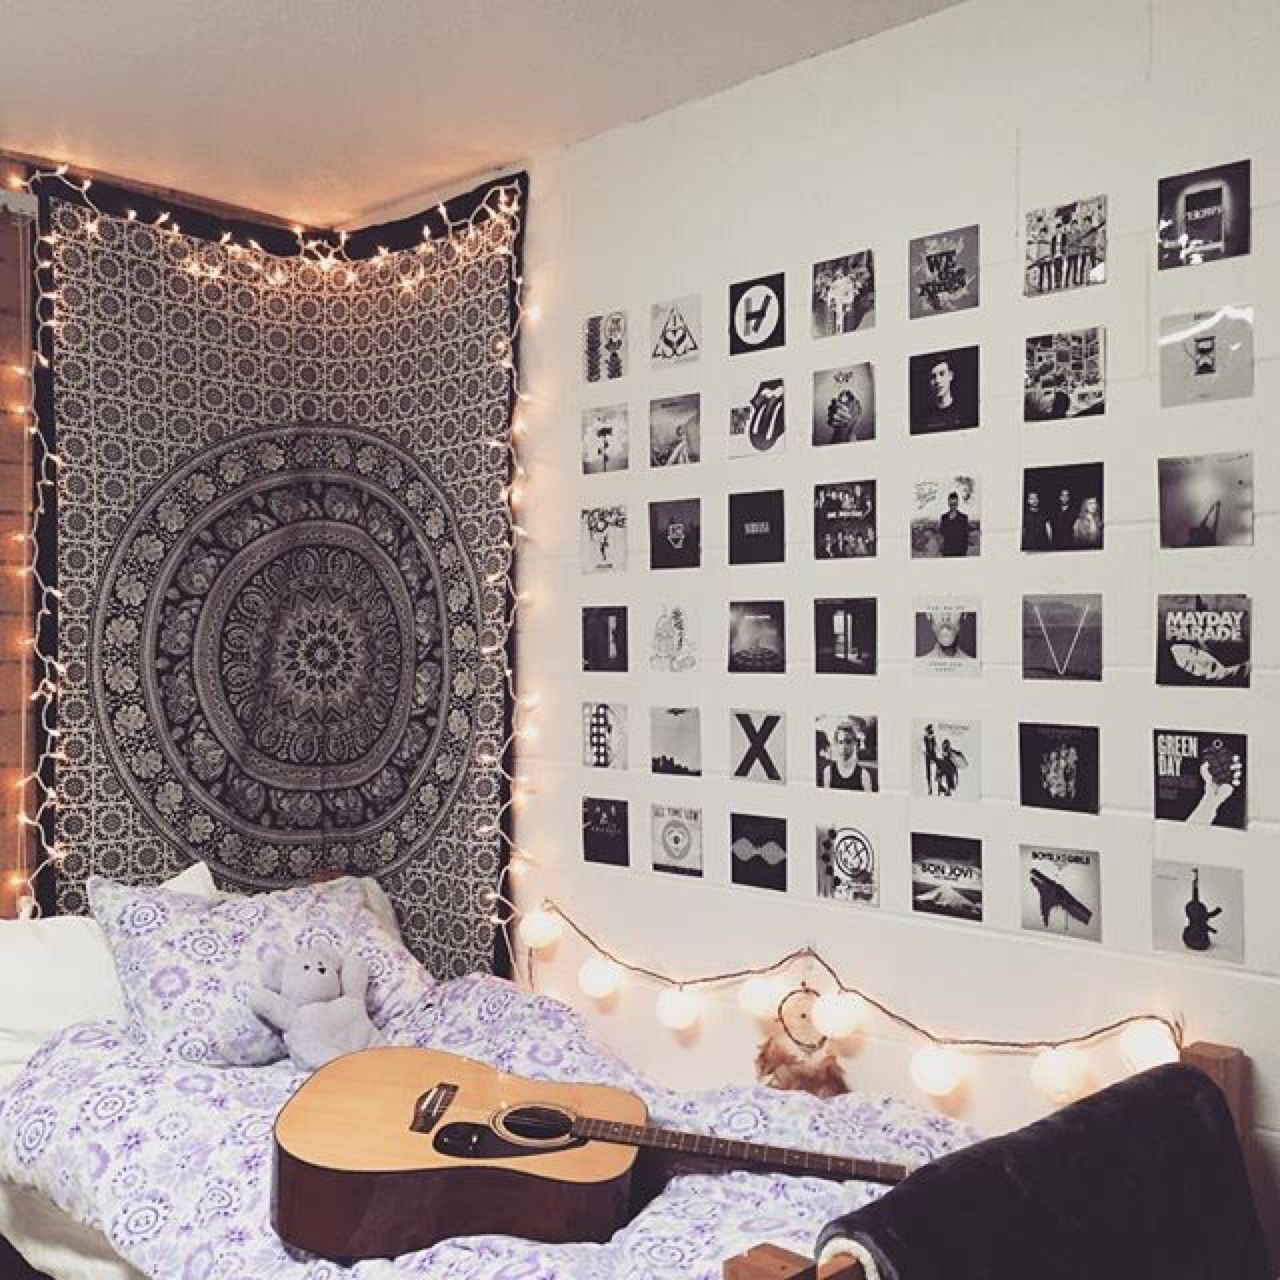 Bedroom wall decor ideas diy - Source Myroomspo Tapestry Bedroom Tumblr Bedroom Decoration Room Decor Diy Room Inspiration Poster Lights Fairy Lights